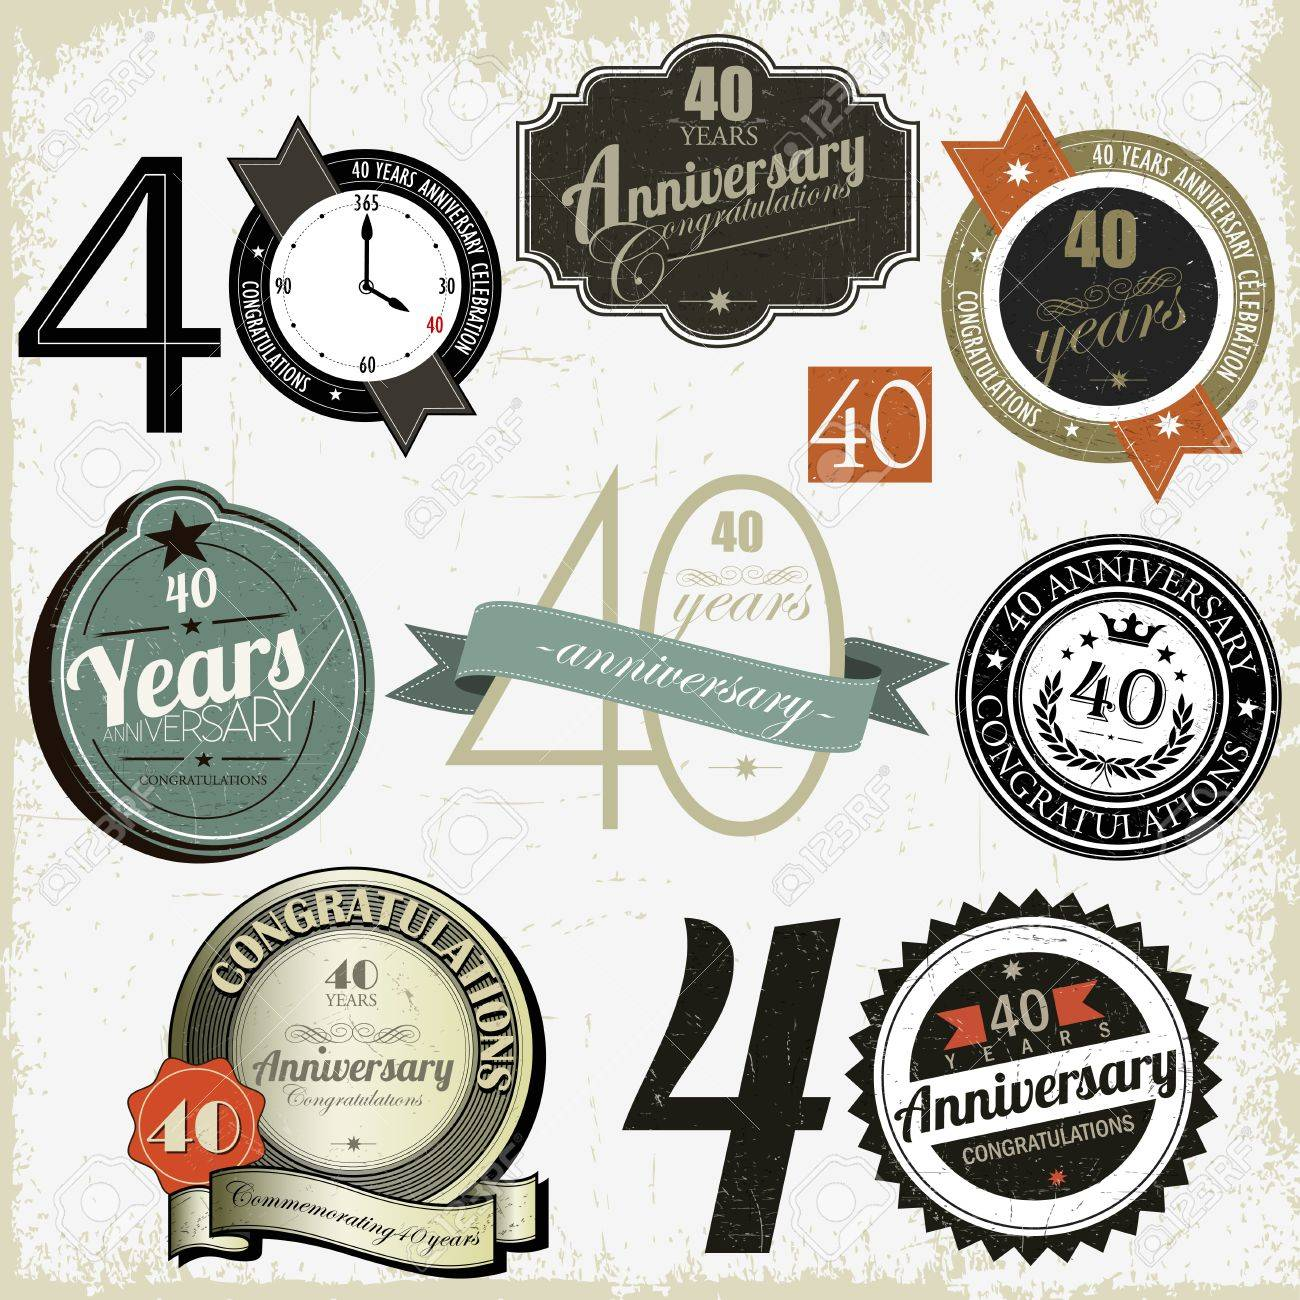 40 years Anniversary other jubilee labels, signs and designs collection Stock Vector - 16064916